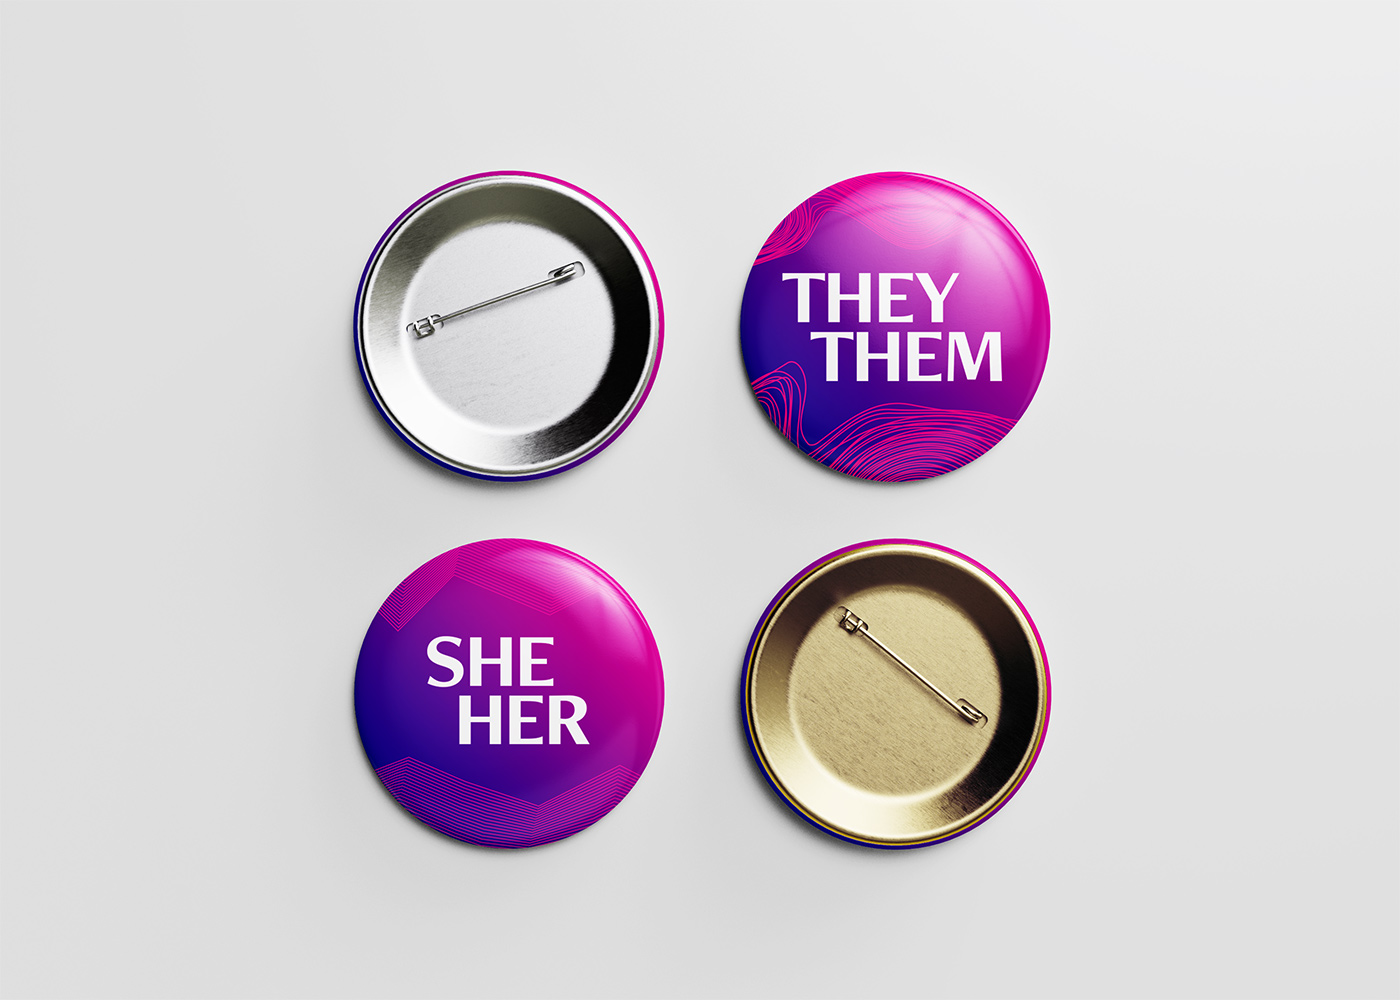 Image of the front and back of pins that say they/them and she/her